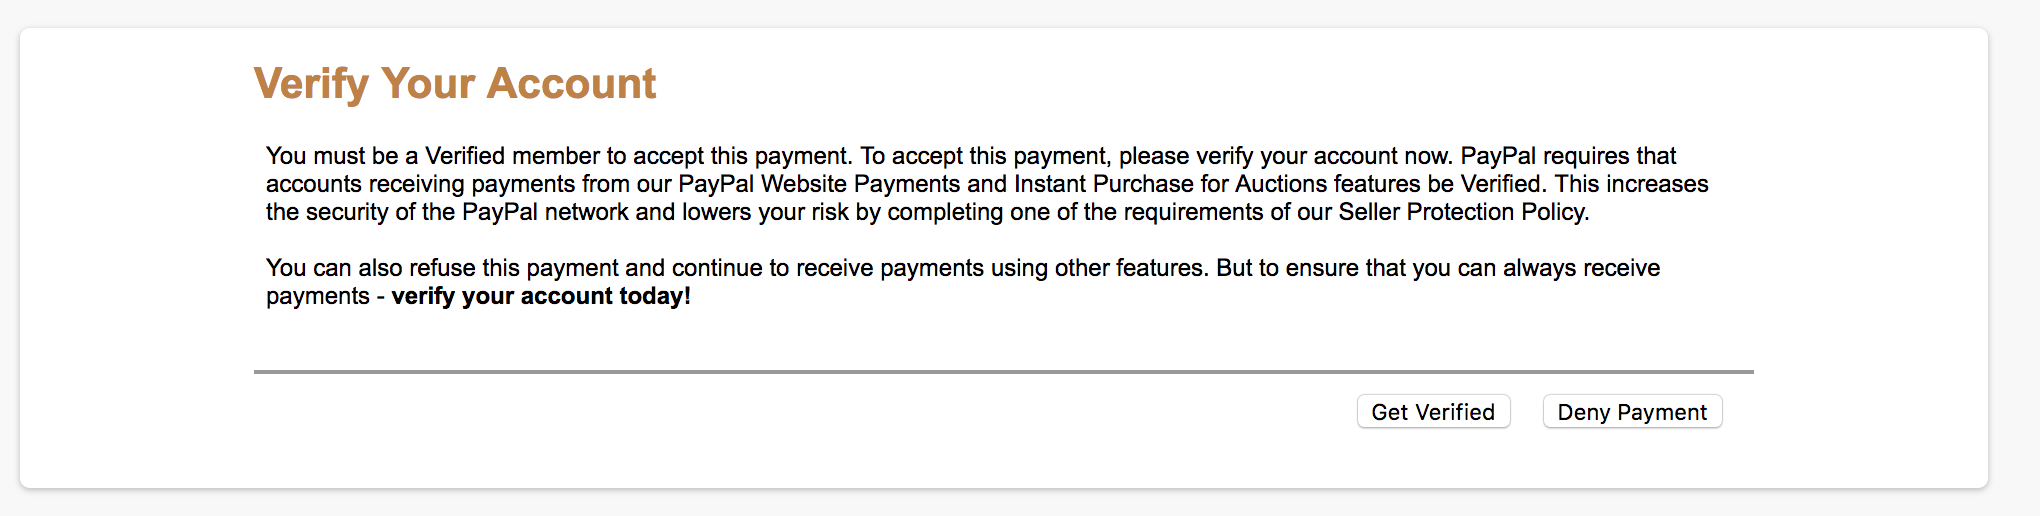 Can't Accept Received Payments - PayPal Community